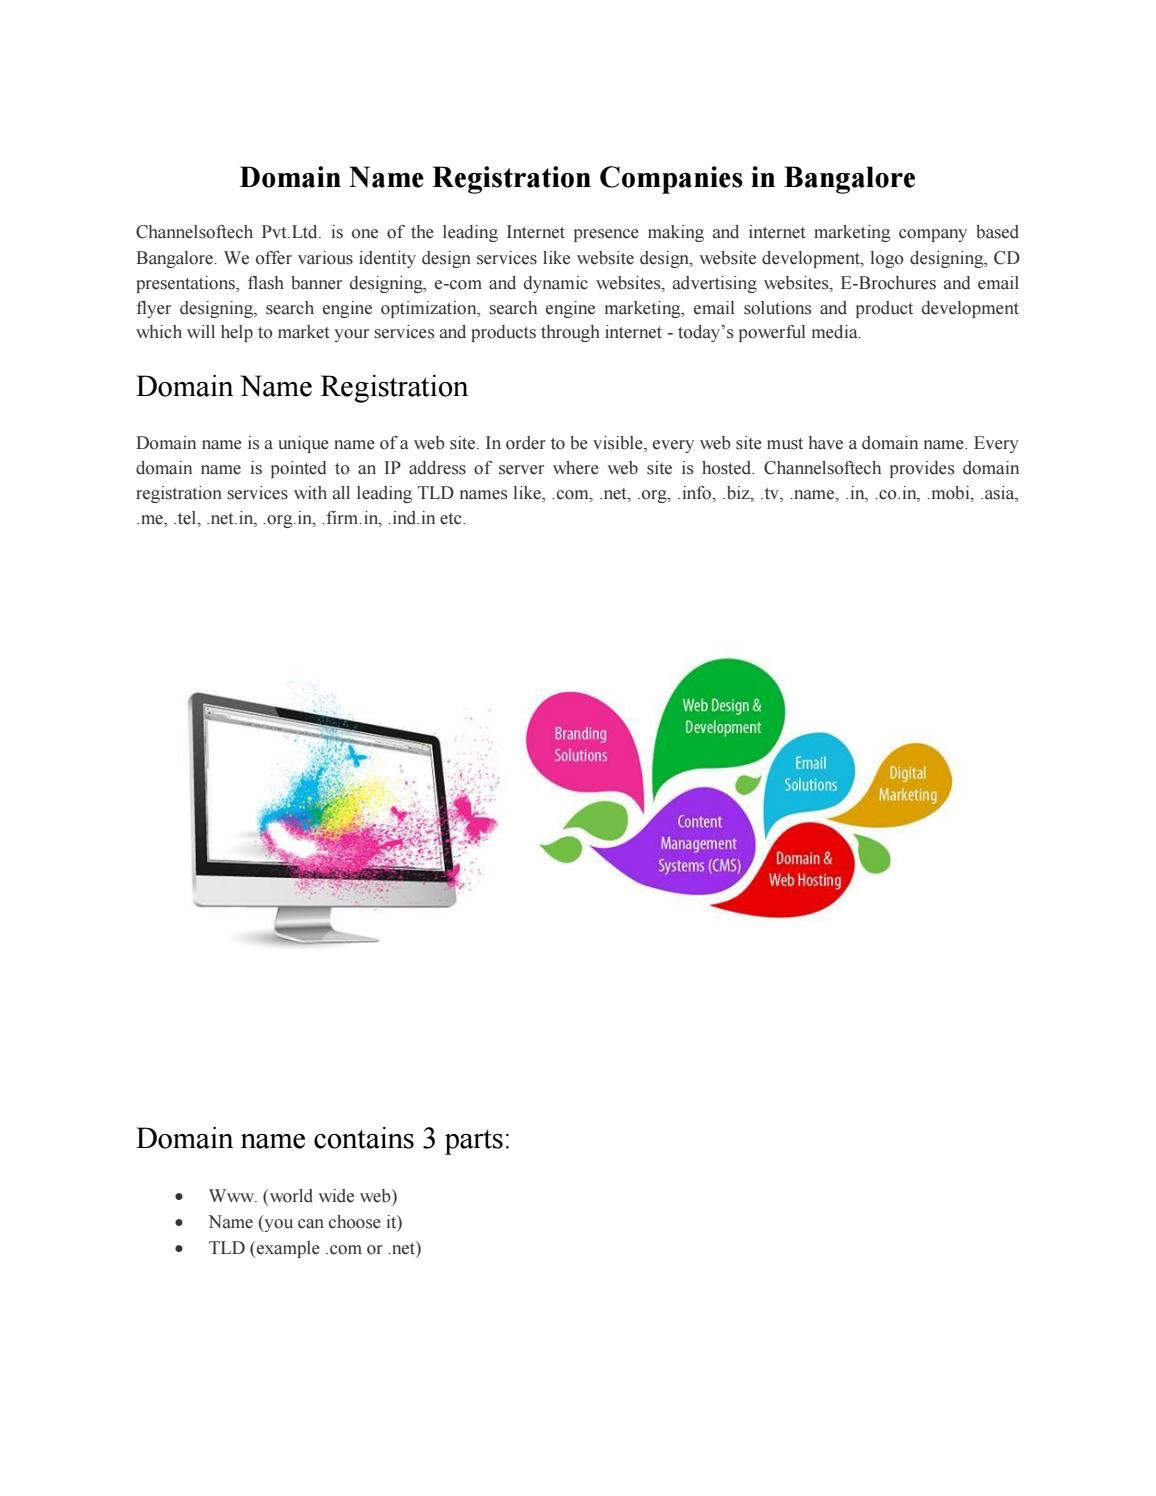 Domain Name Registration Companies in Bangalore by Channelsoftech